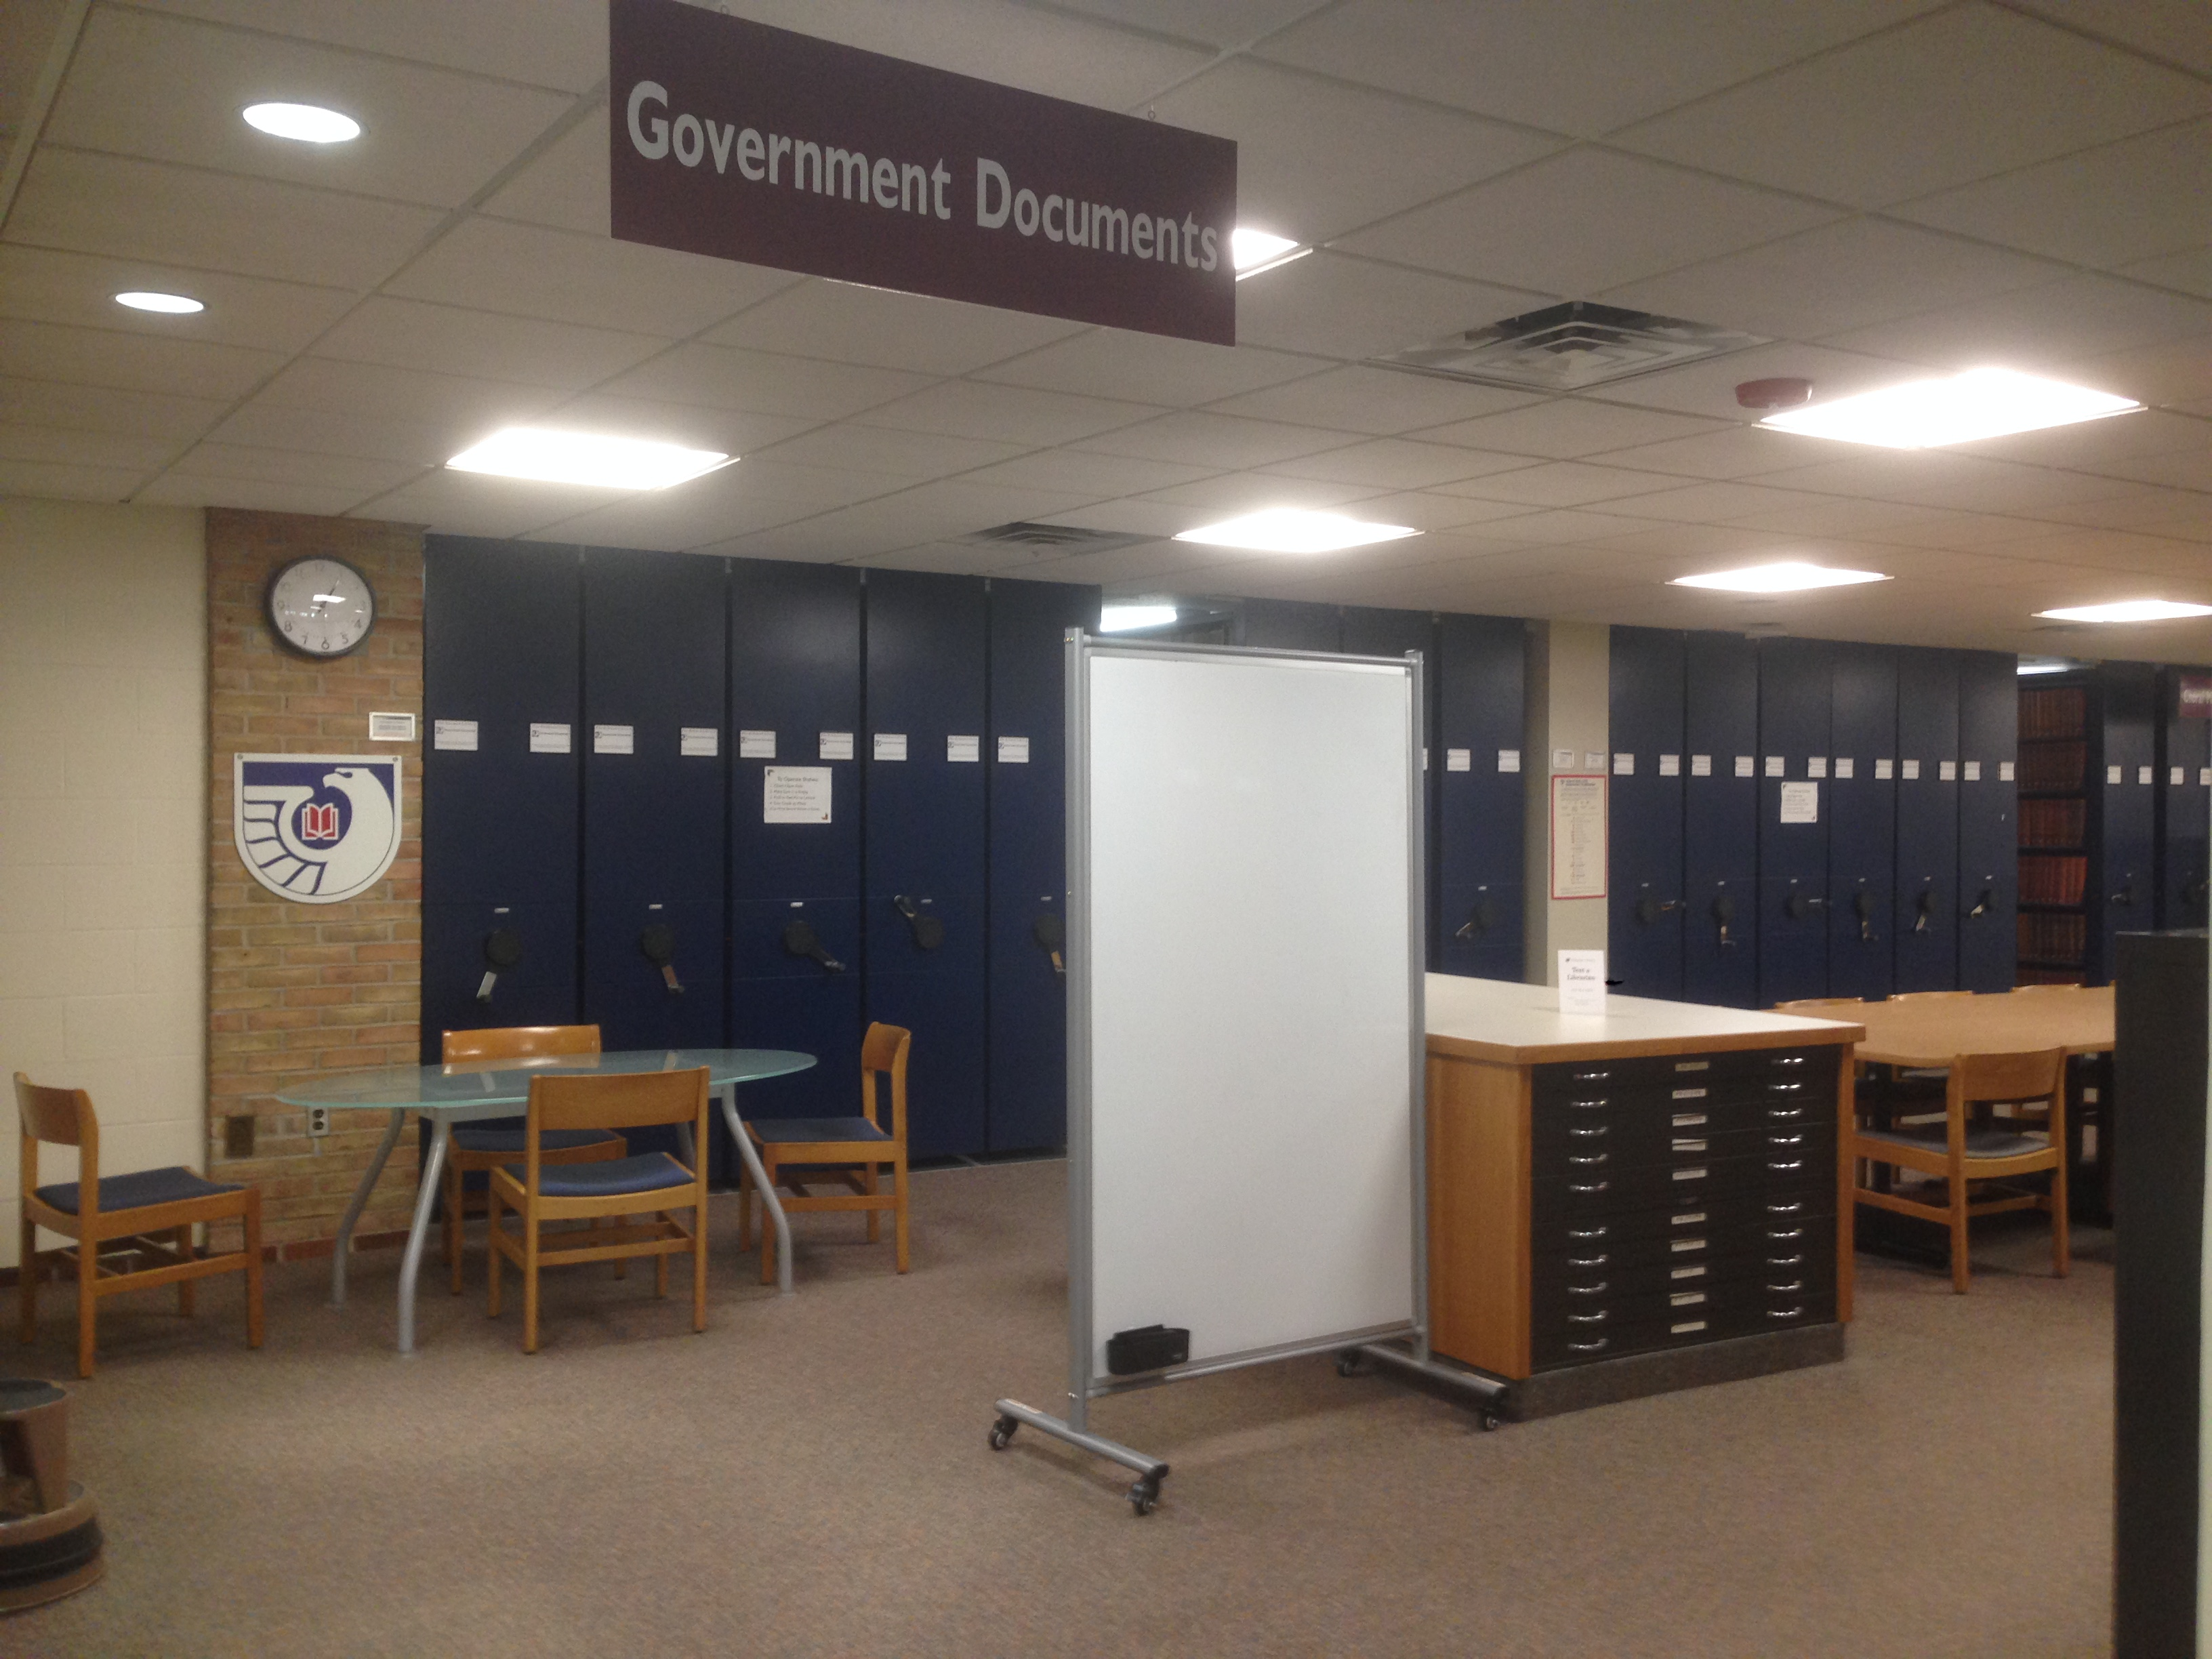 Photograph of the Government Documents collection in the Hekman Library.